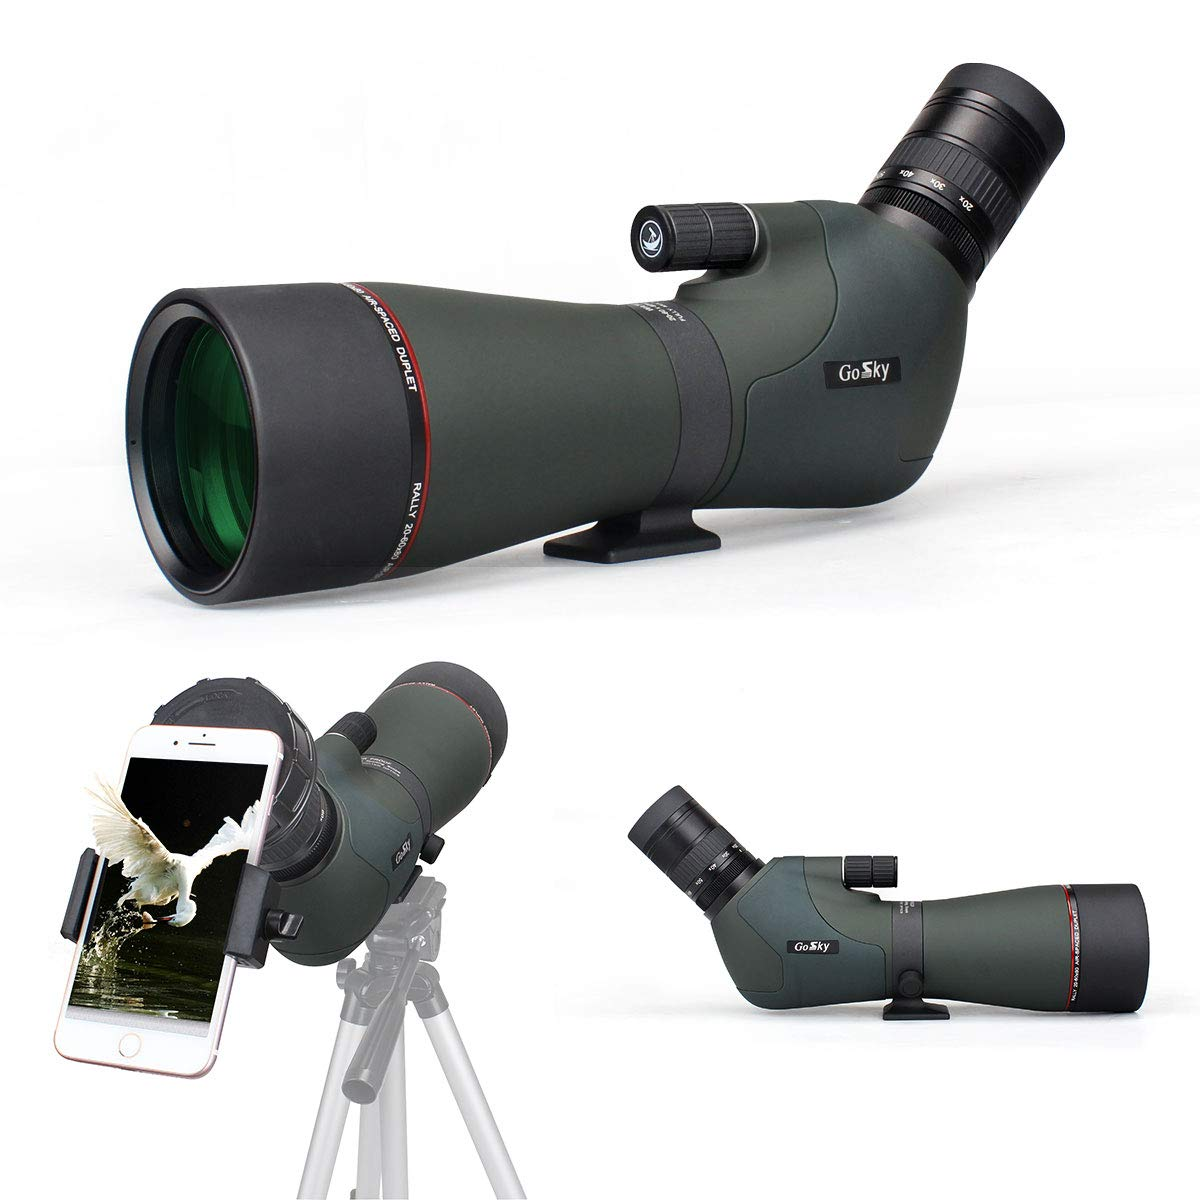 Gosky Newest 20-60x80 Dual Focusing Spotting Scope - Waterproof HD Optics Zoom Scope with with Carrying Case and Smartphone Adapter for Hunting Bird Watching Target Shooting Astronomy Scenery by Gosky